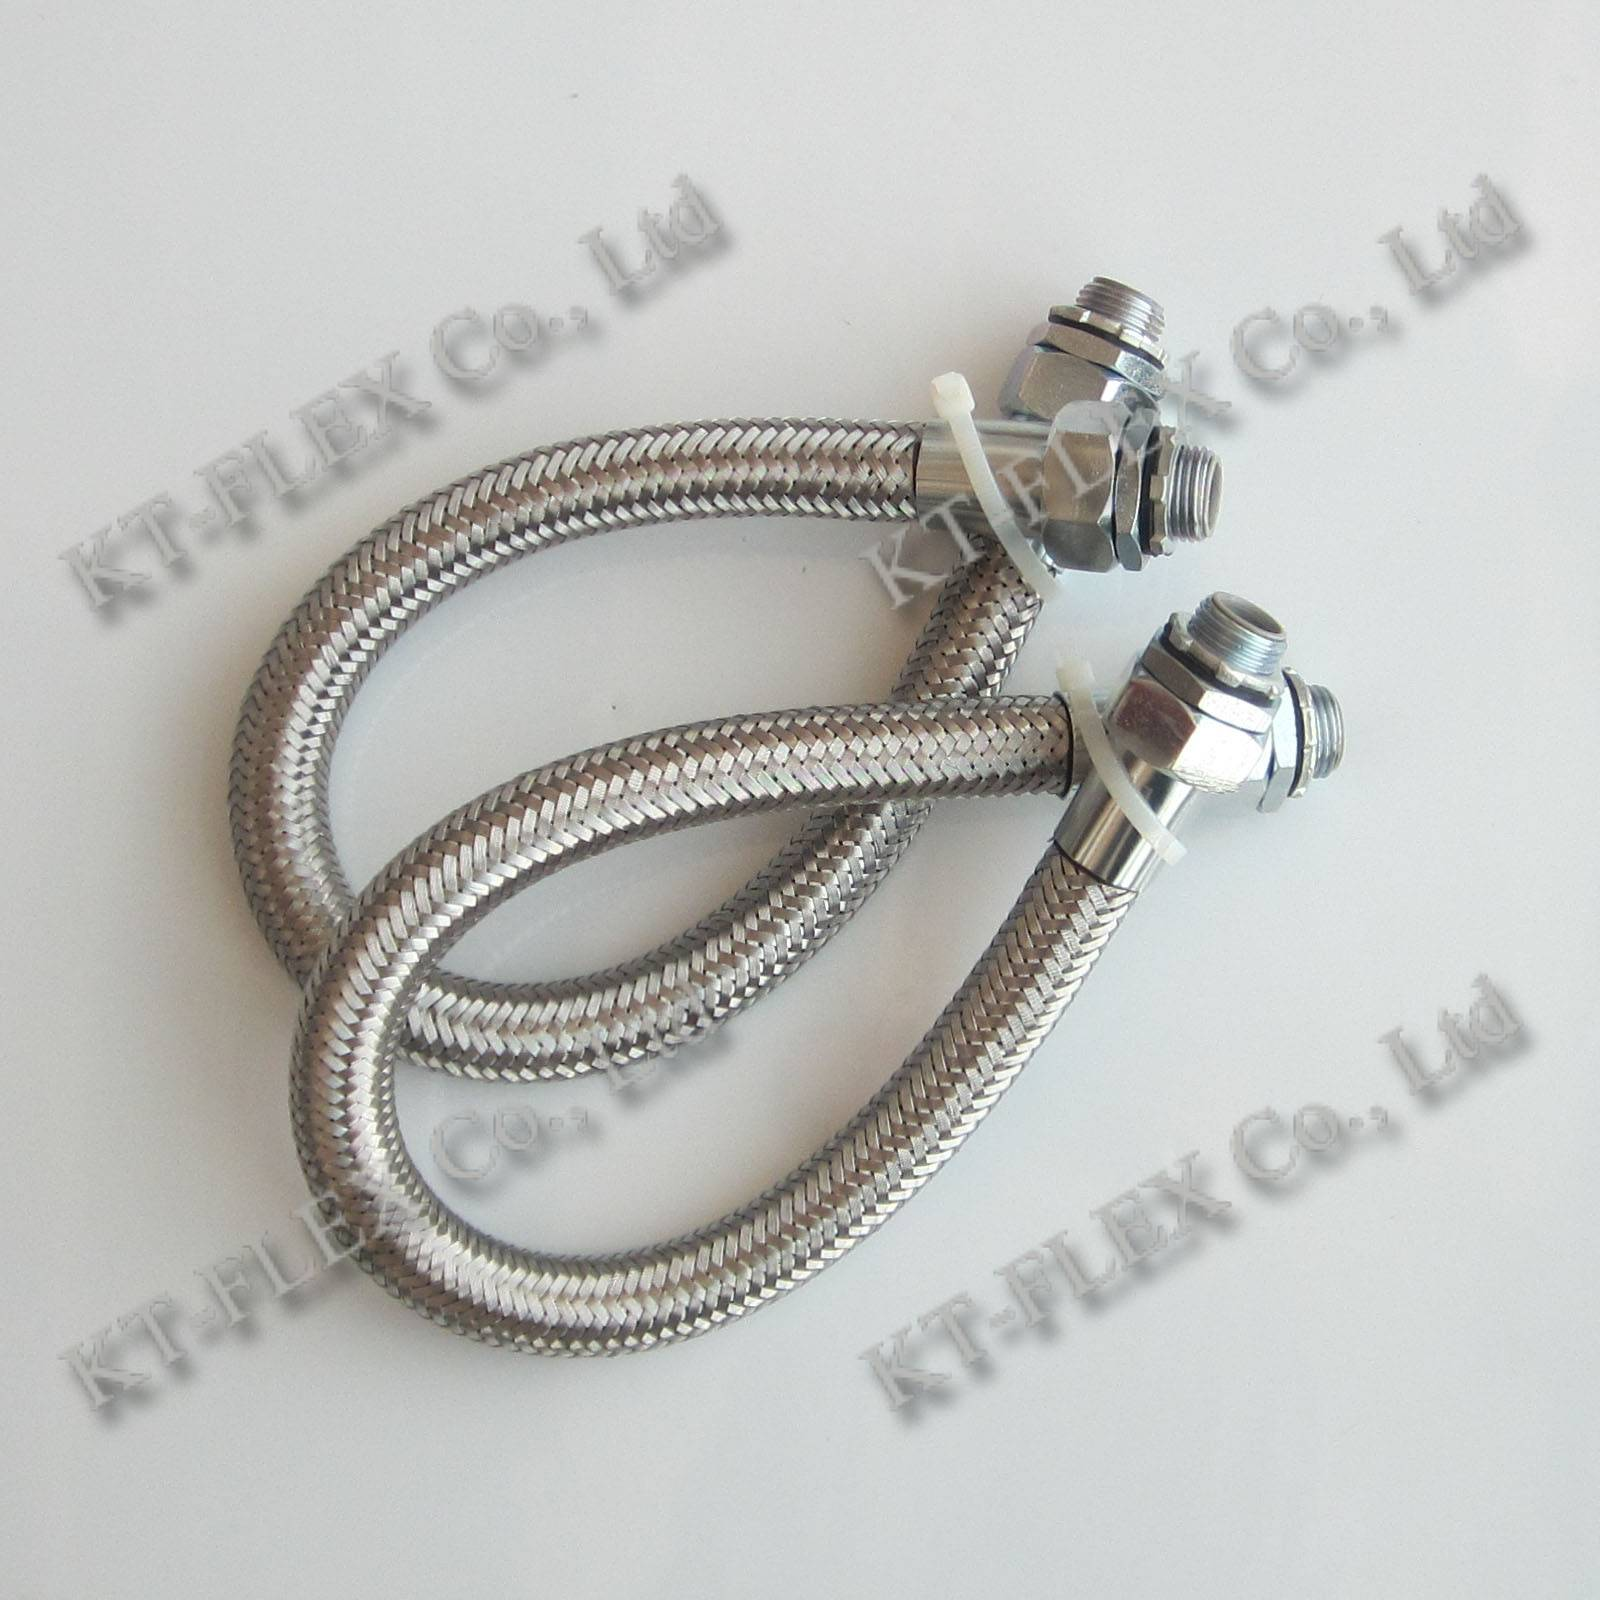 Explosion proof conduit braided electrical conduit